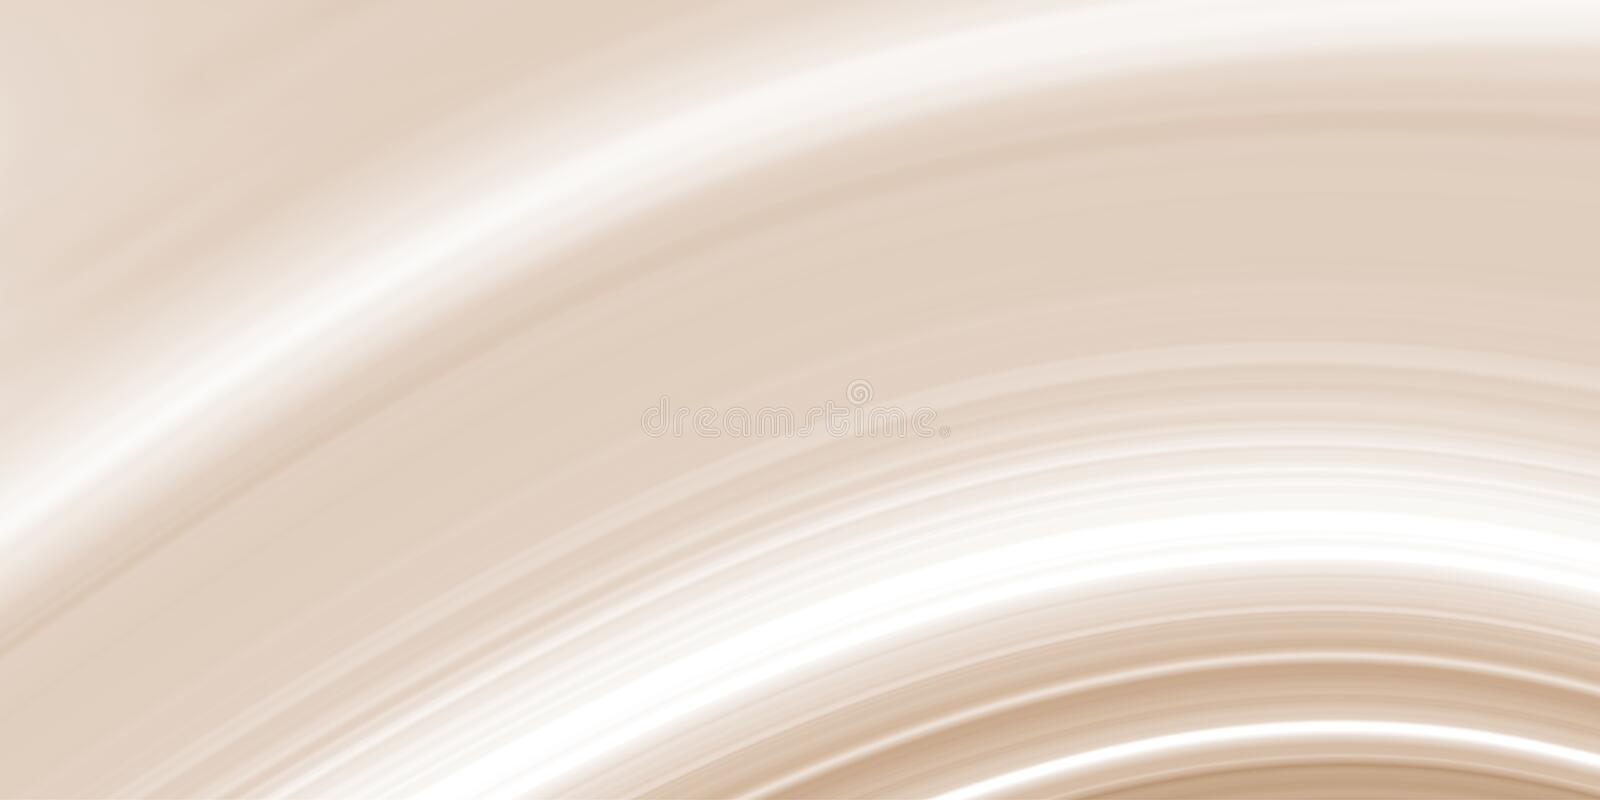 Natural Beige Onyx Marble. marble for interior exterior decoration design business and industrial construction concept design. vector illustration